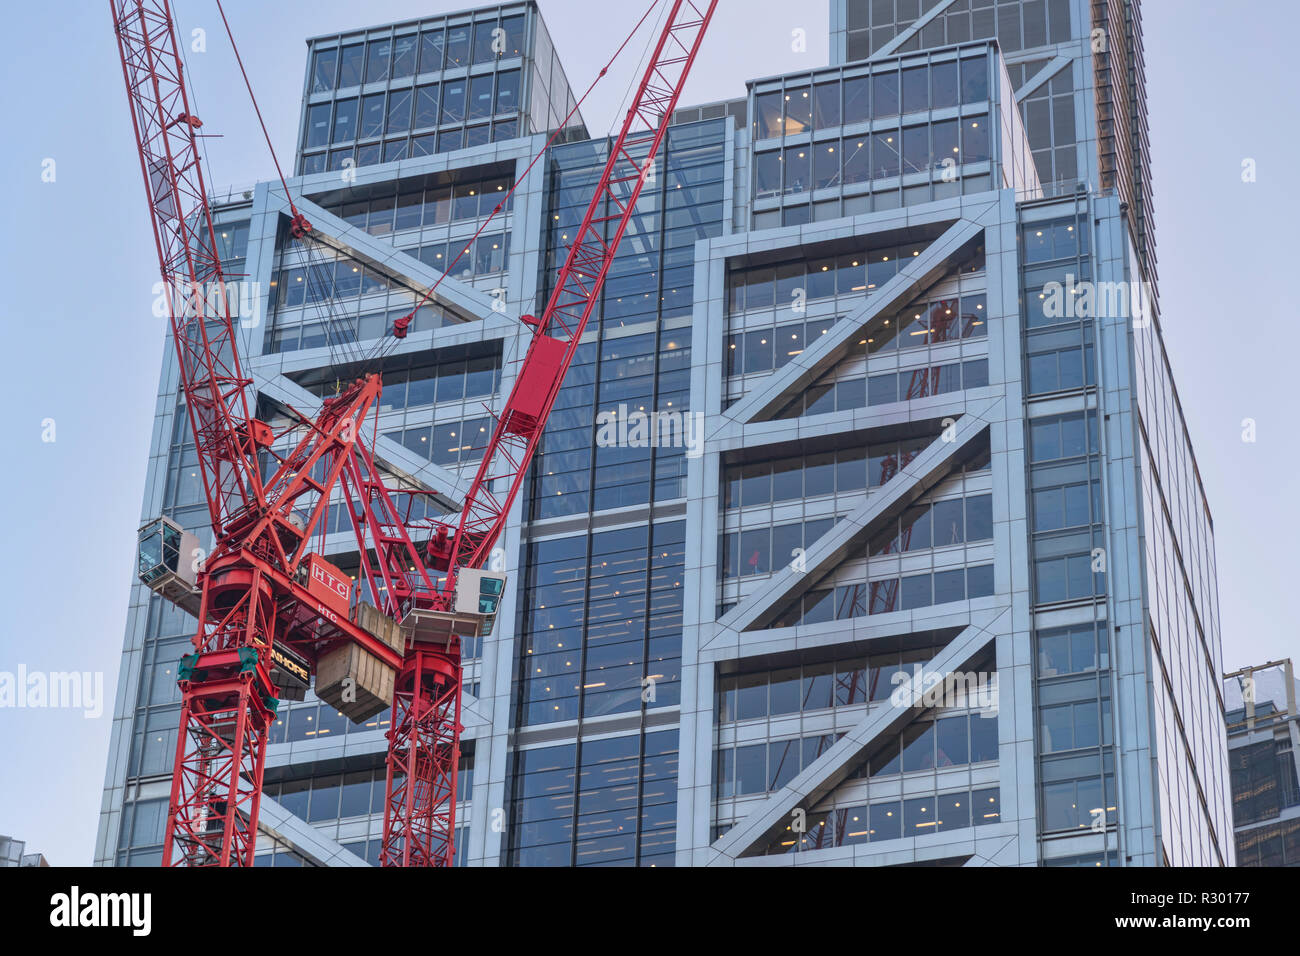 Two tower cranes next to The Heron Tower, Bishopsgate, City of London - Stock Image